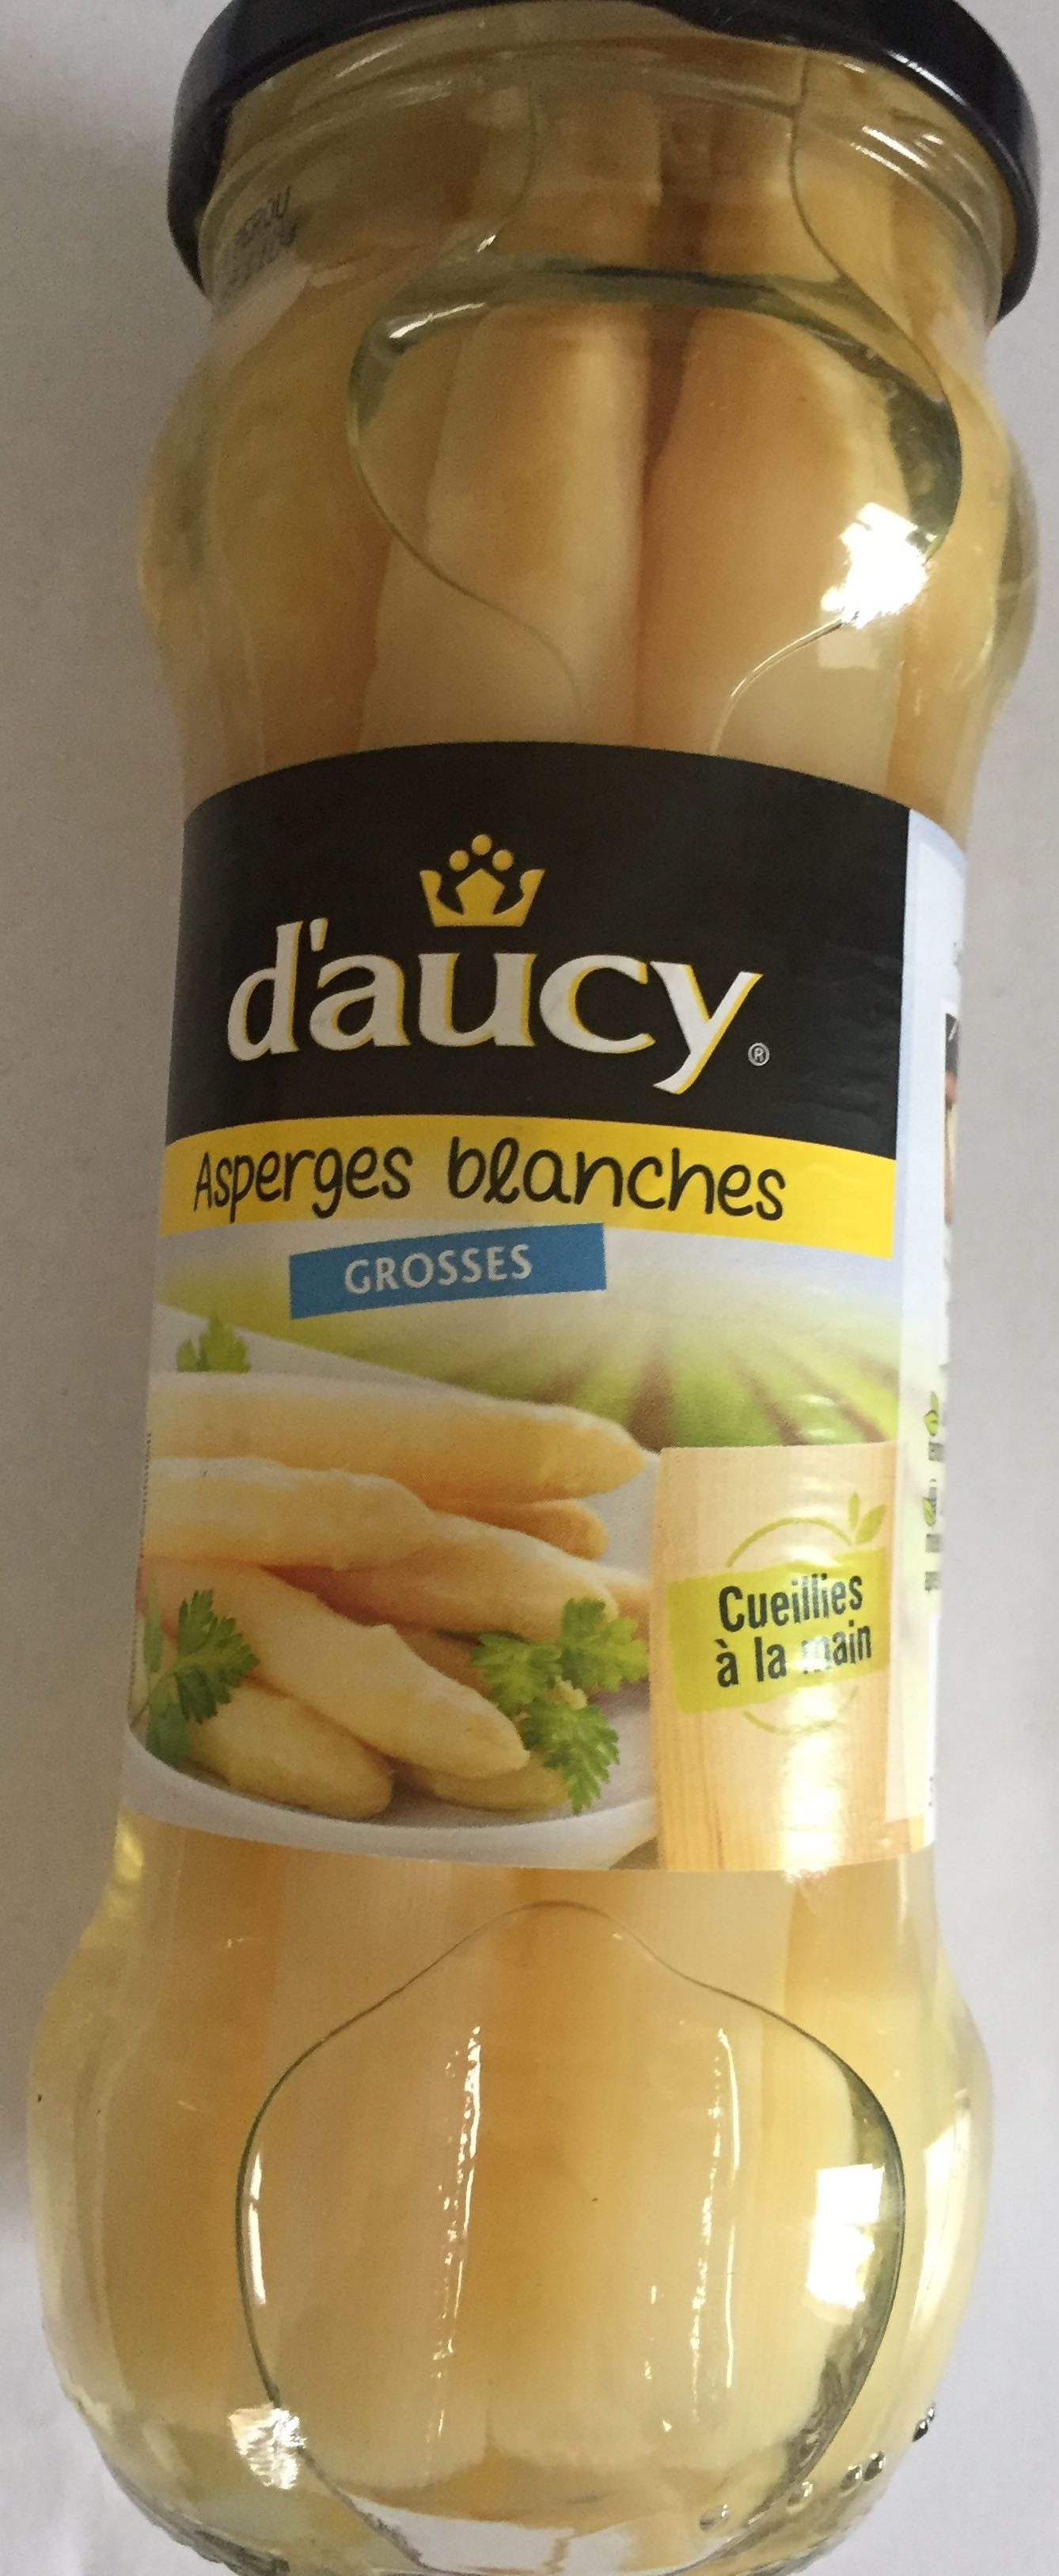 Asperges blanchs grosses - Product - fr